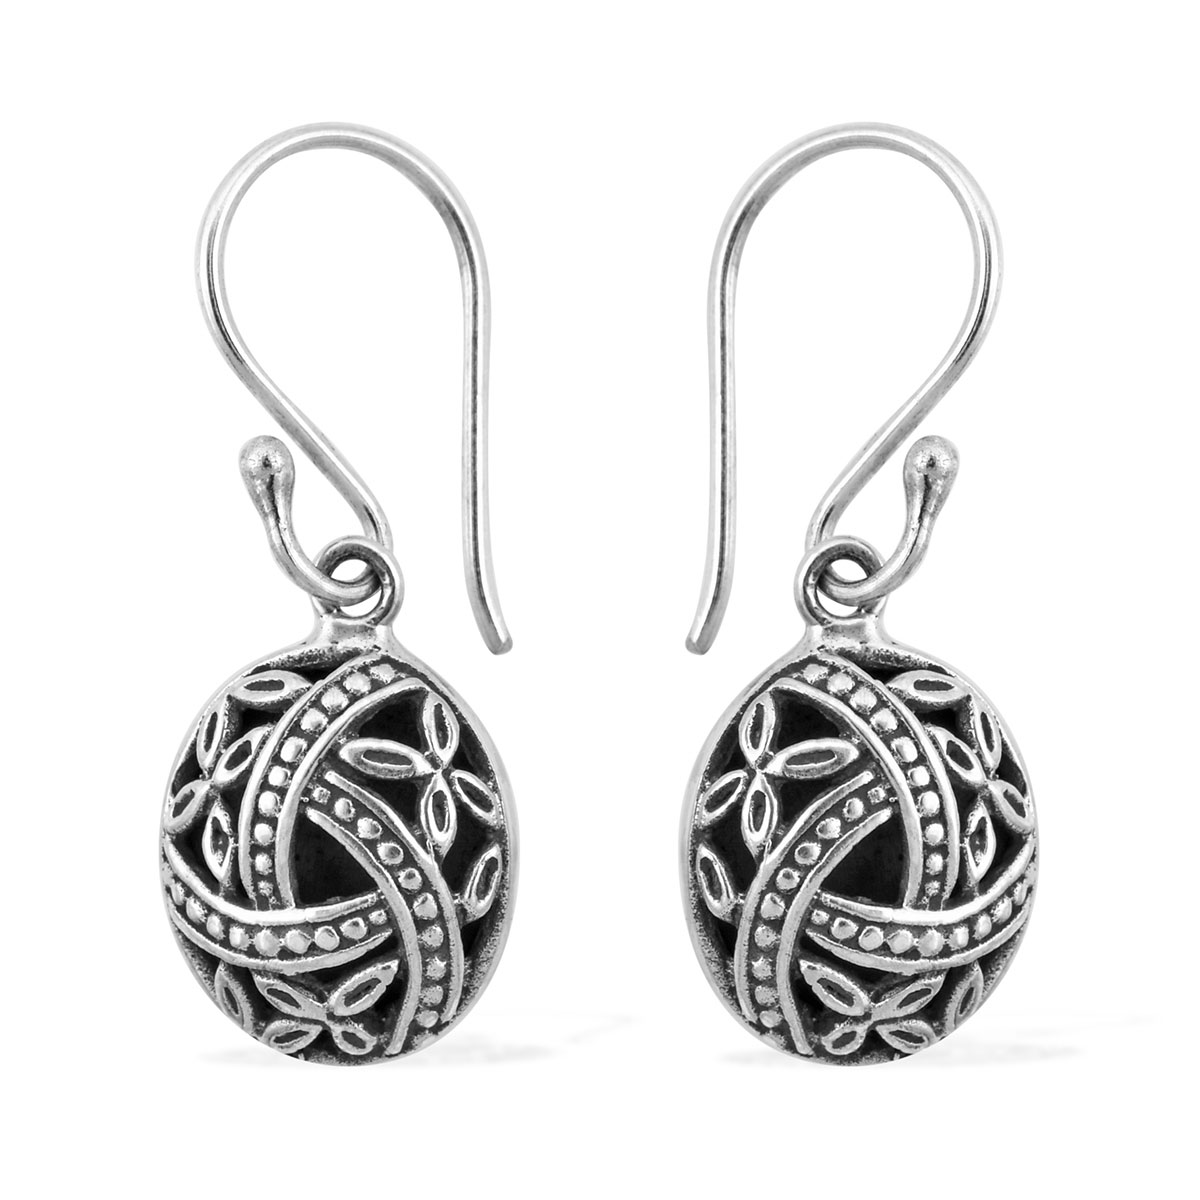 Dangle Drop Earrings Silver T Jewelry For Women